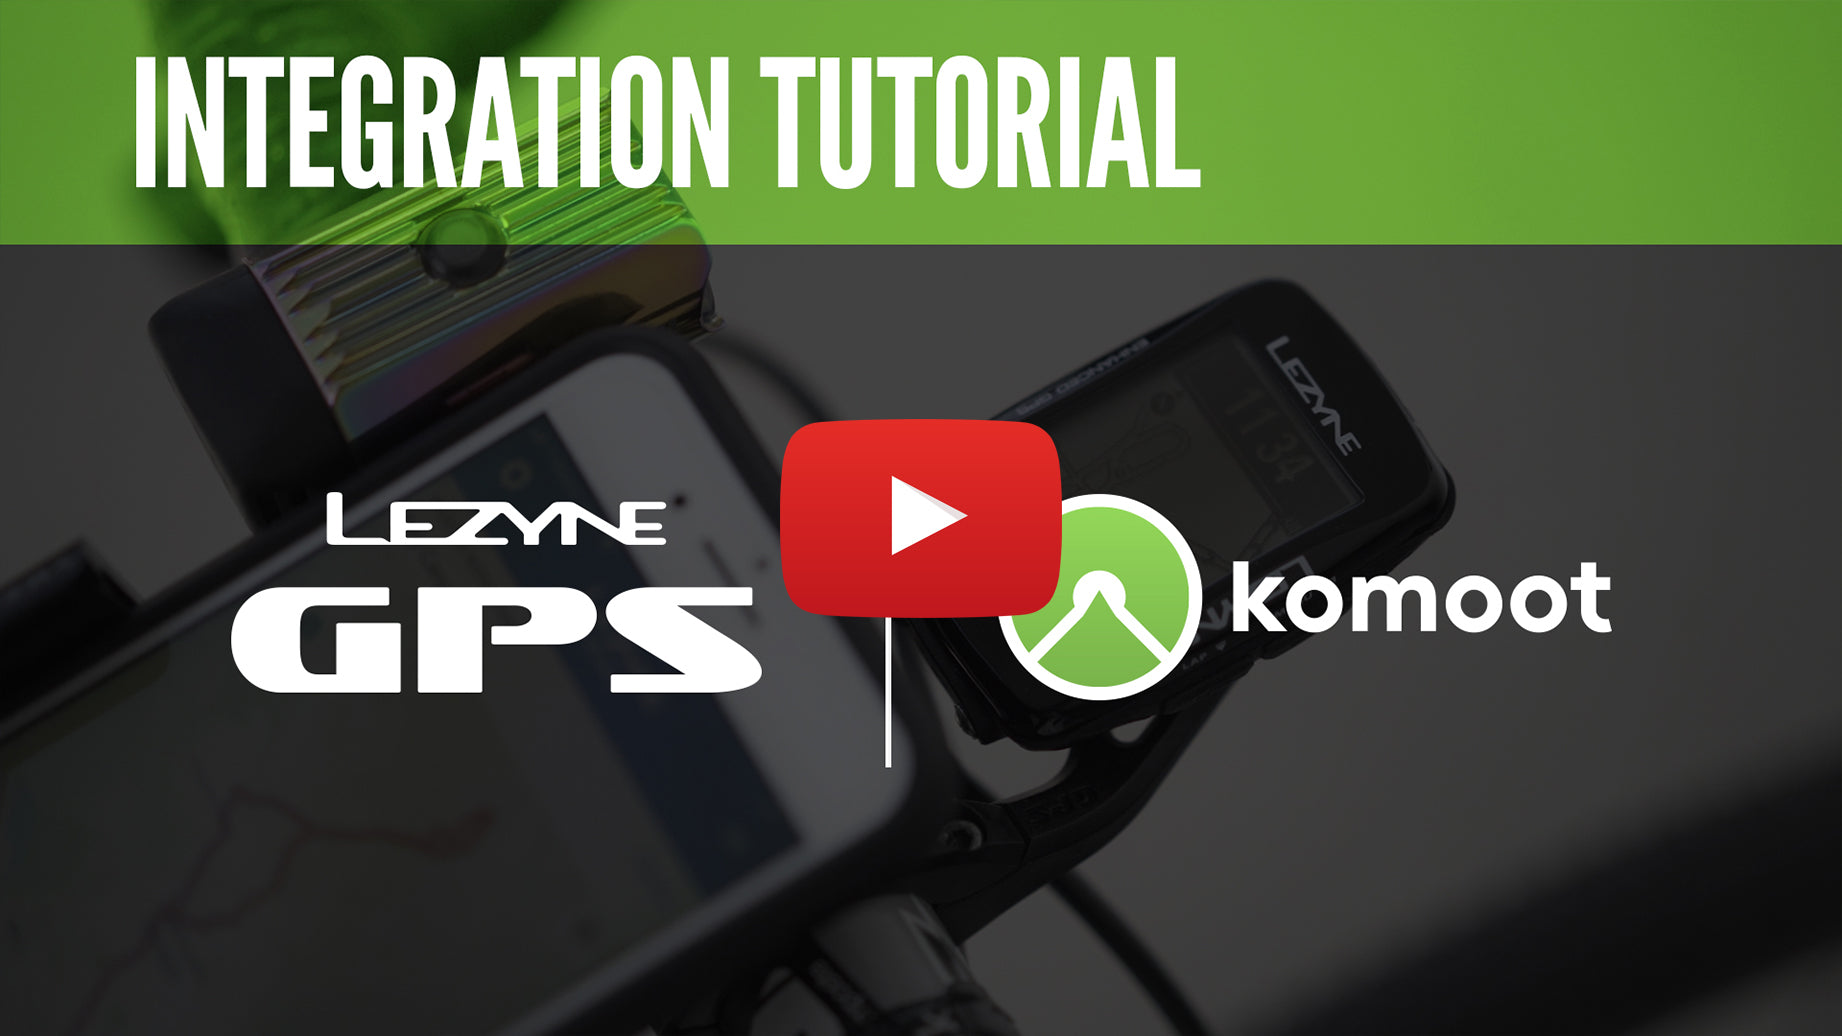 Komoot and Relive Integration